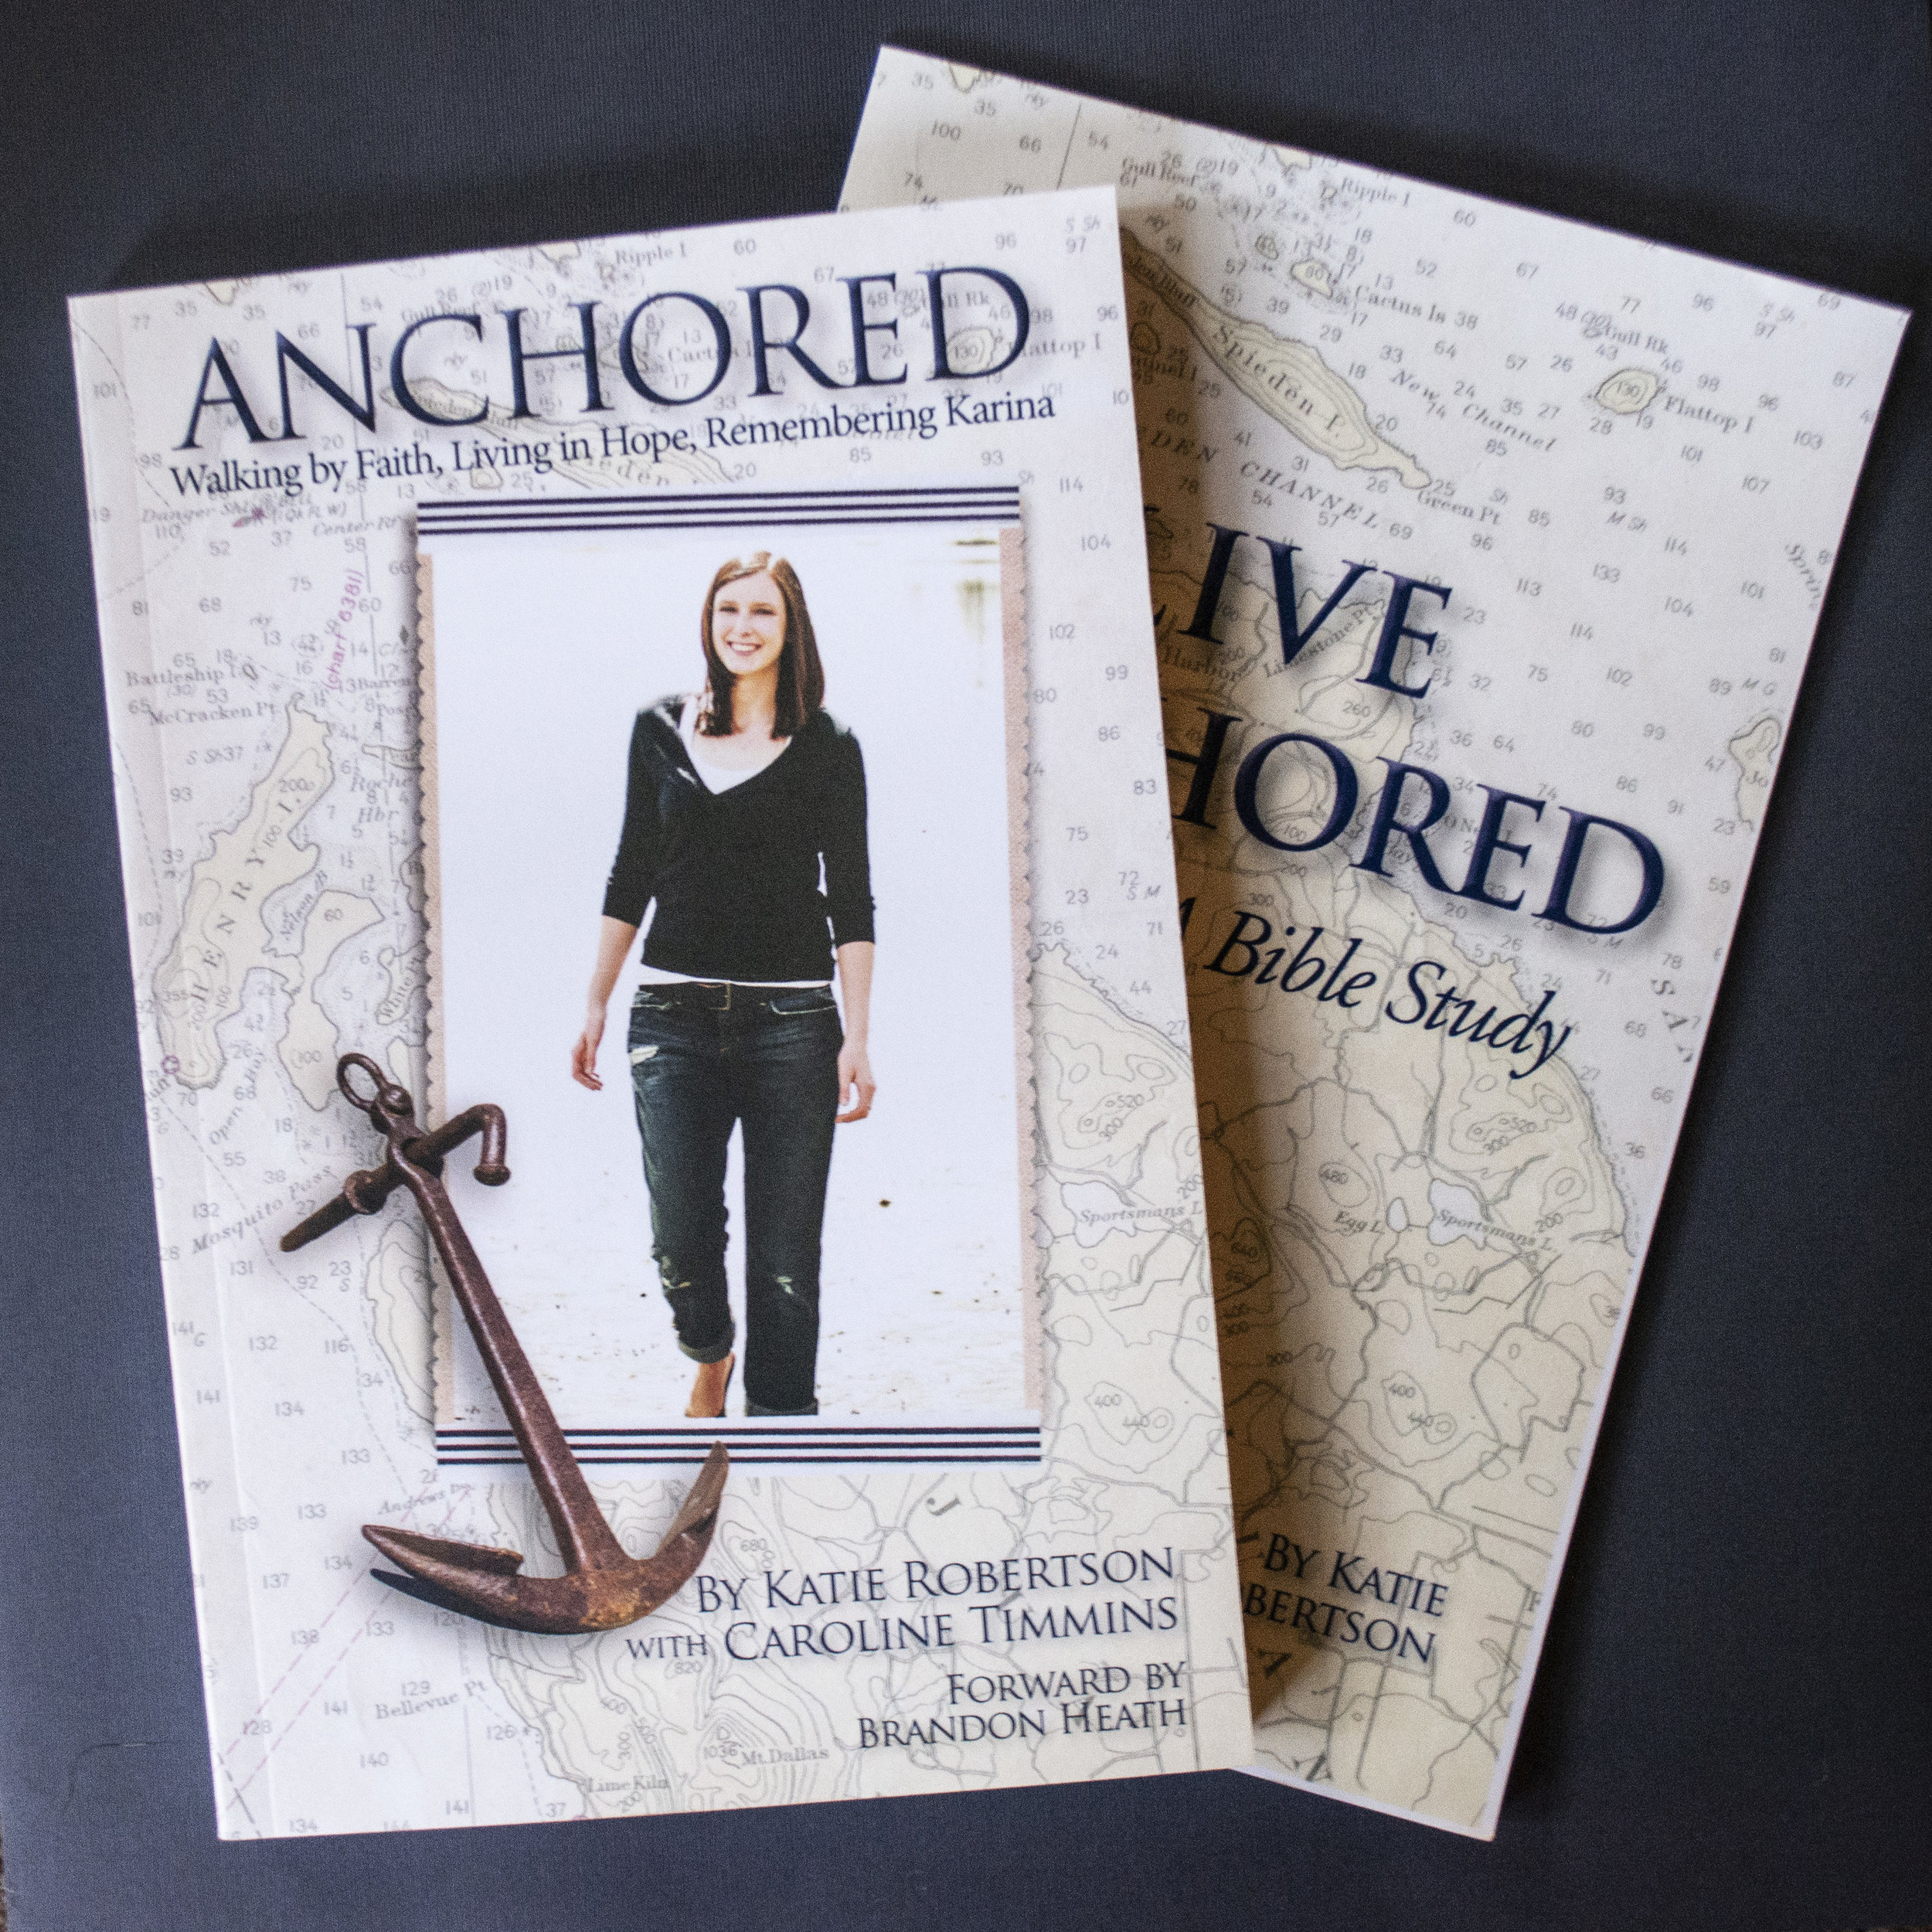 "Anchored and Live Anchored: A Bible Study - Katie Robertson - Life is full of ""stormy weather"" of varying degrees. Katie Robertson has experienced the exhilaration of clear skies and smooth sailing, and the anxiety and terror of high winds and stormy seas—particularly through the loss of her 19-year-old daughter, Karina, to cancer. Through it all, she has learned how to set an anchor firmly in her heart that has kept her from being swept away, emotionally and spiritually.Katie's first book, Anchored, is the story of Karina's remarkable life of faith, and her battle with cancer. In her second book, a five-session Bible study, Katie shows how anyone can navigate the storms of life: set an anchor firmly in your heart—Jesus Christ—and begin to live and believe on the truths of God's Word.NEW - March 2019! Katie's second Bible study, Jesus, Our Anchor, is now out and available on Amazon.com! Both books serve as a stand-alone studies or an accompaniment to Katie's first book, Anchored: Walking by Faith, Living in Hope, Remembering Karina."